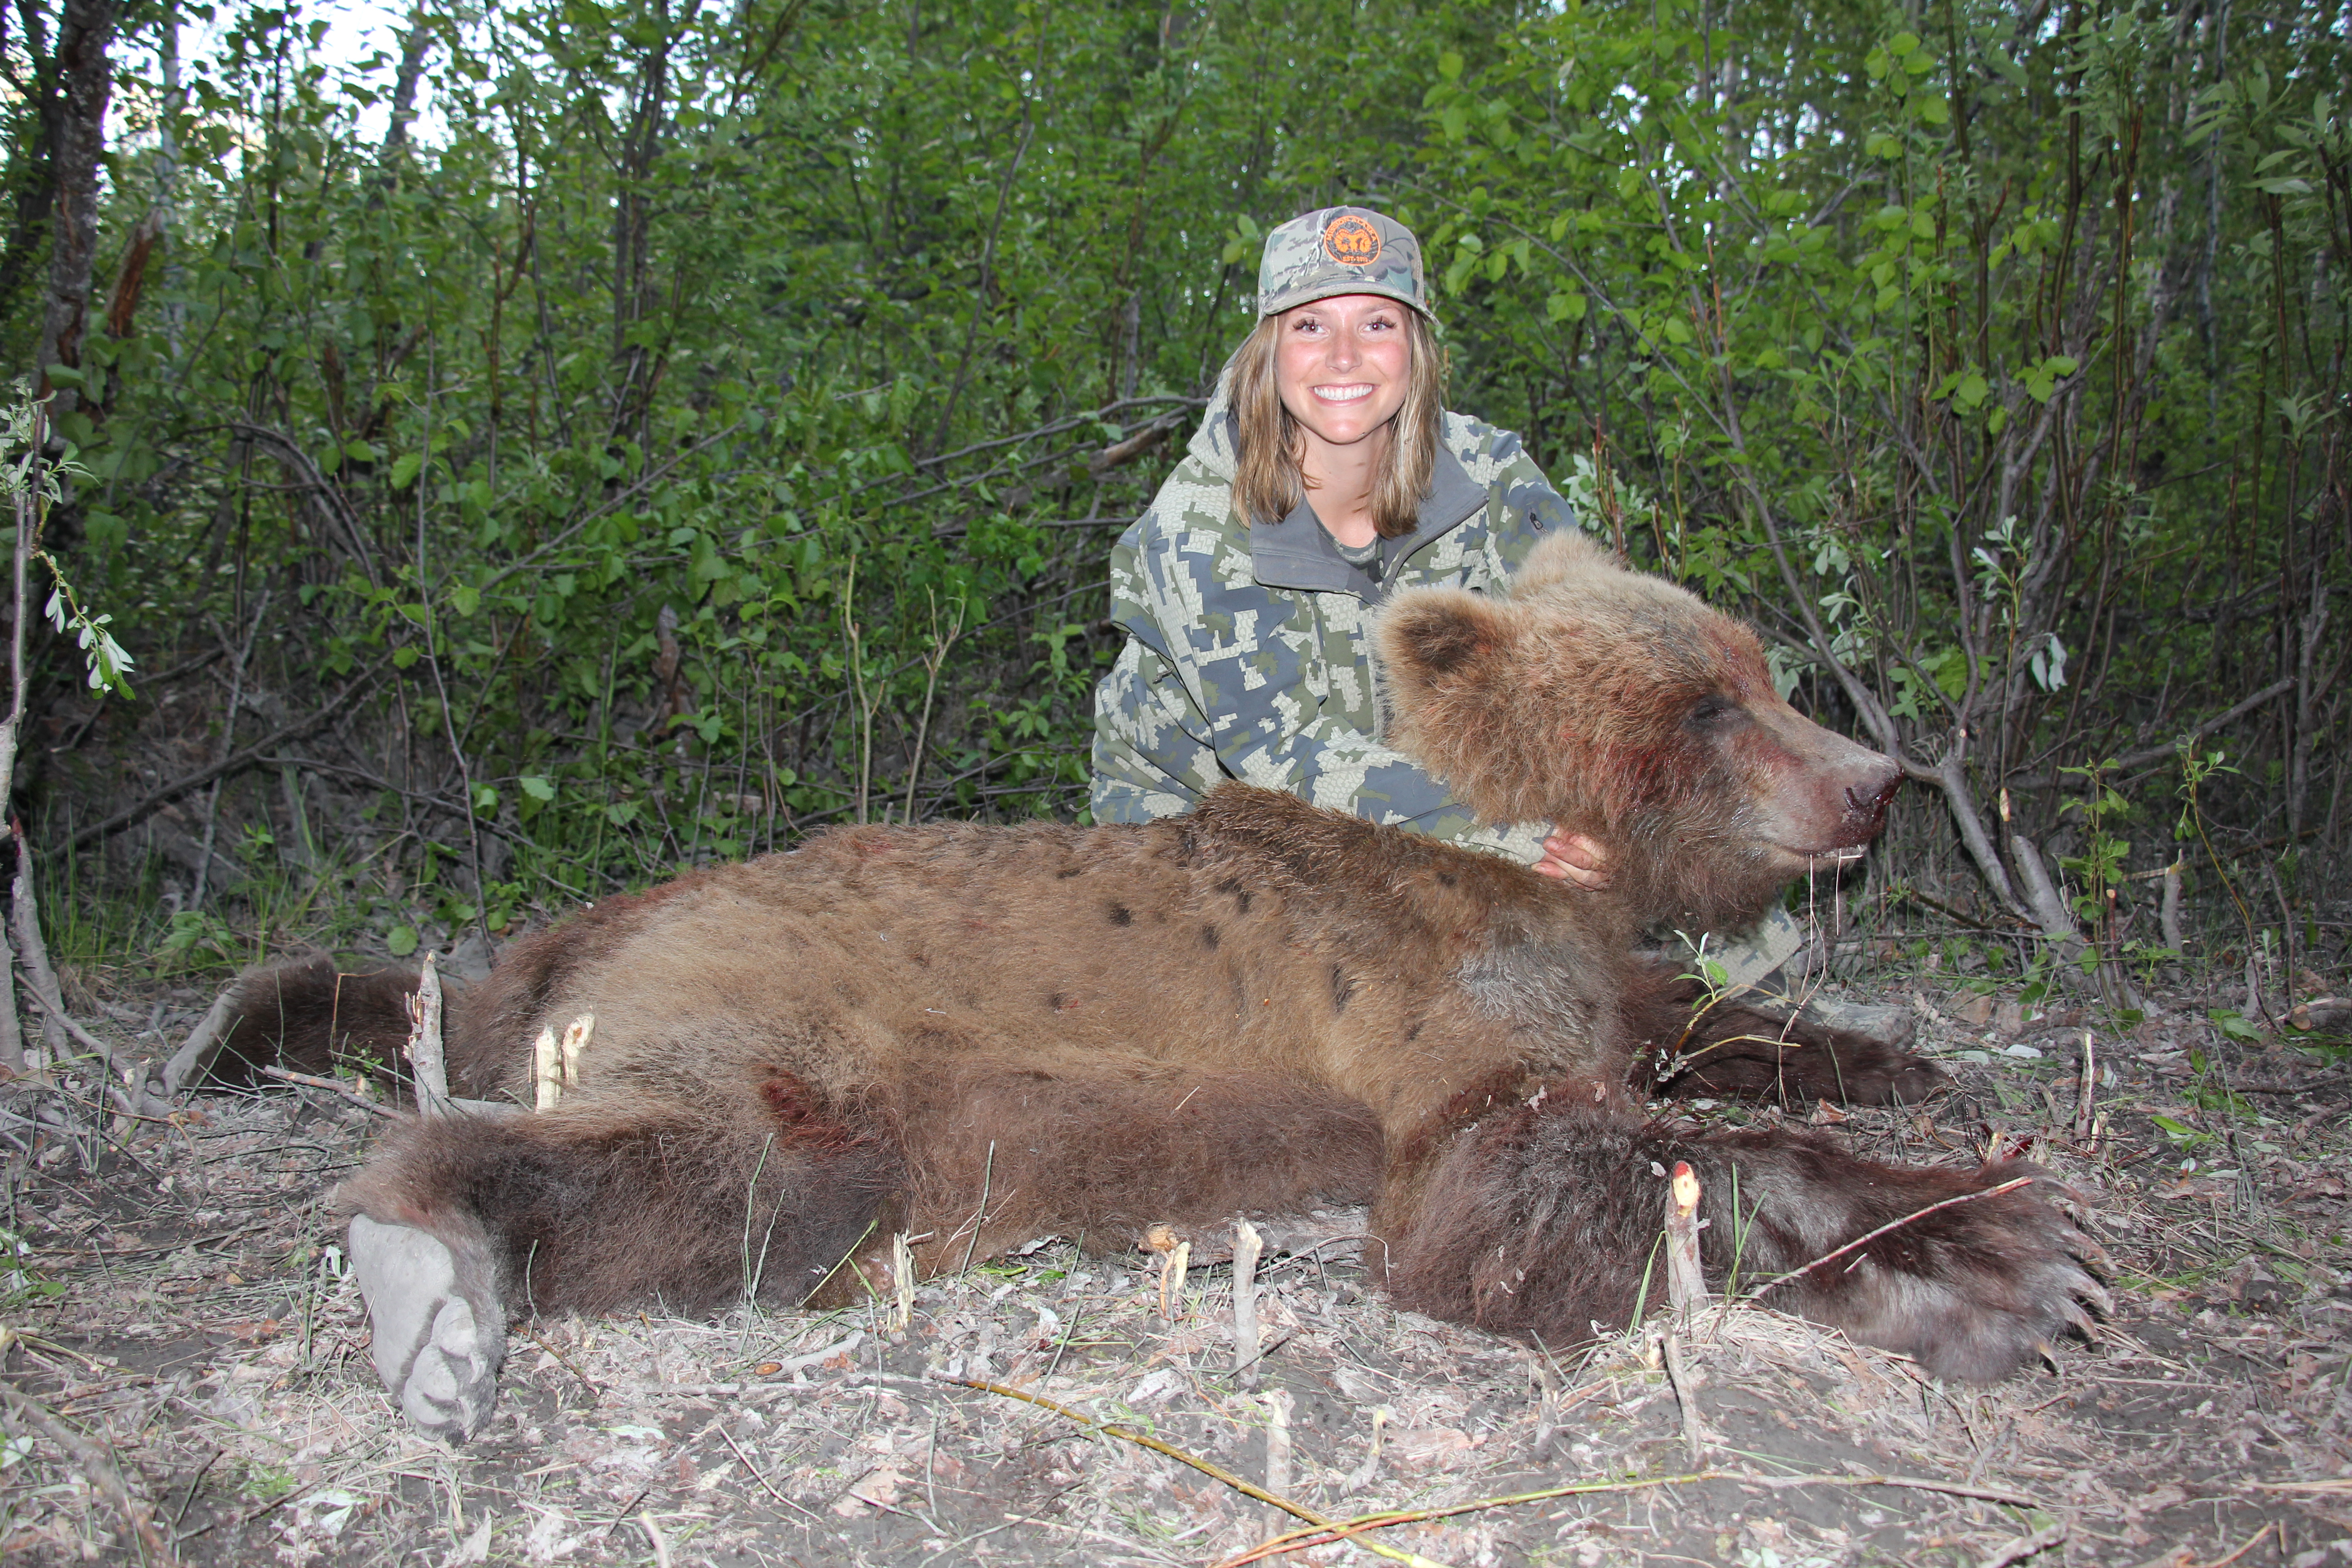 Jordan Manelick with her first bear